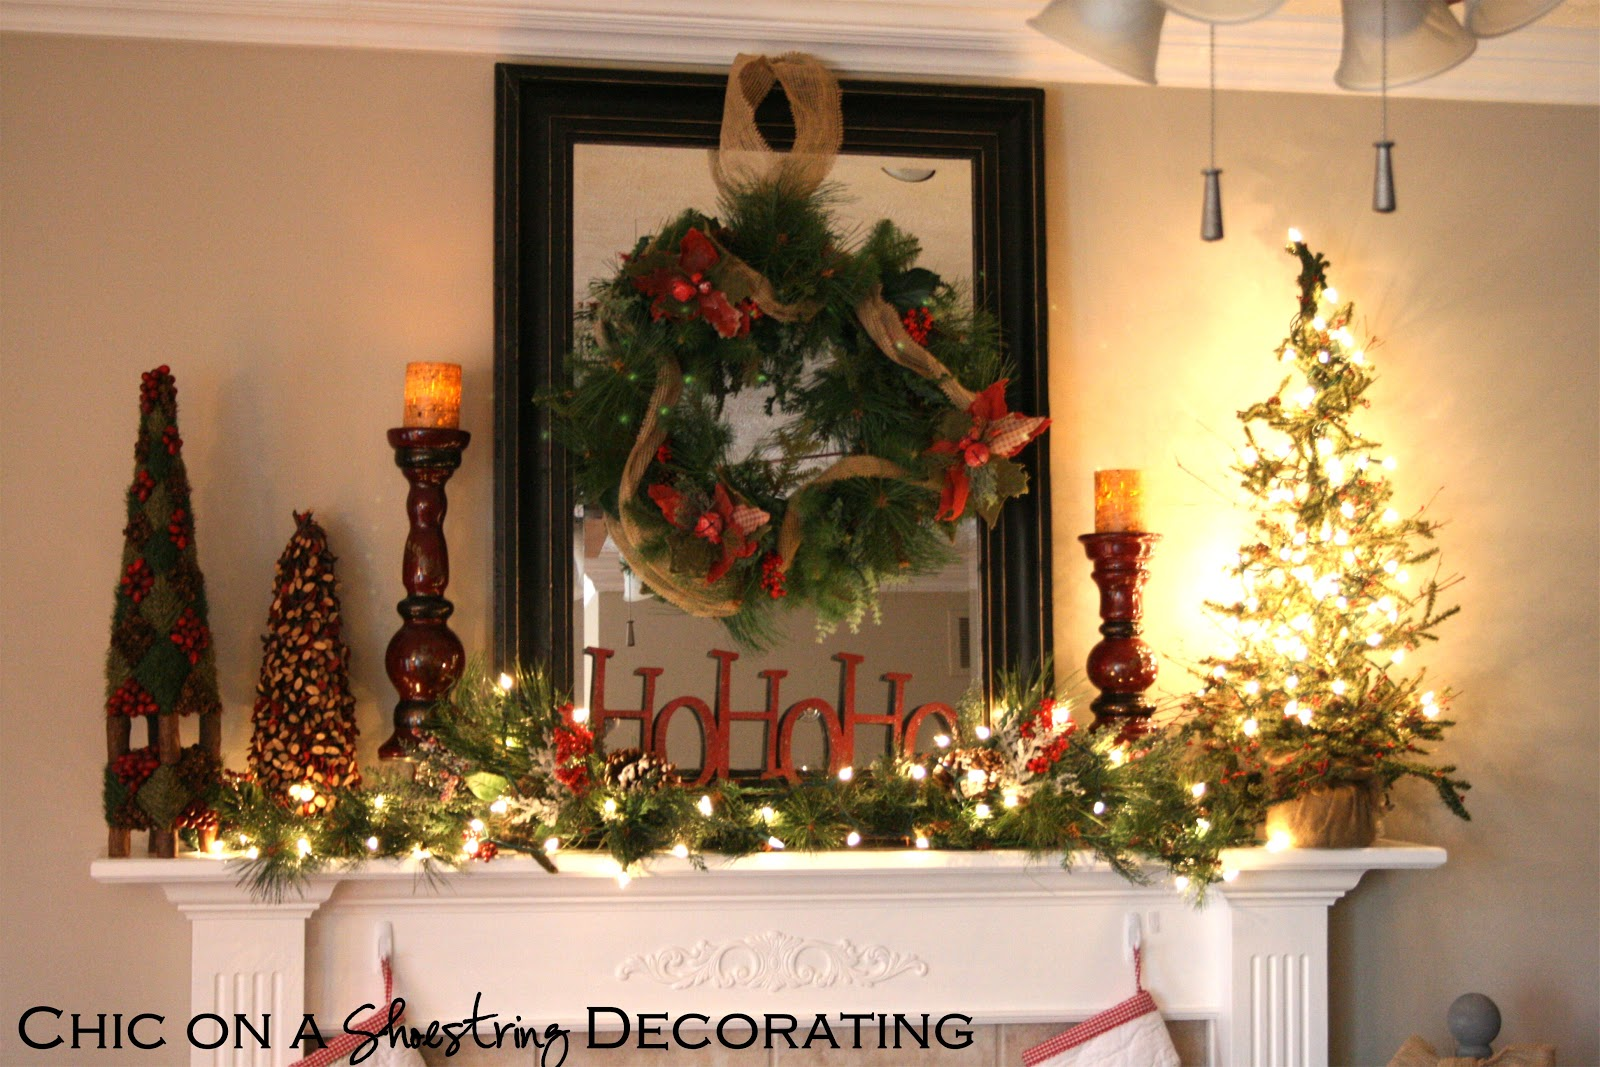 Chic on a shoestring decorating rustic christmas mantel for Christmas home designs